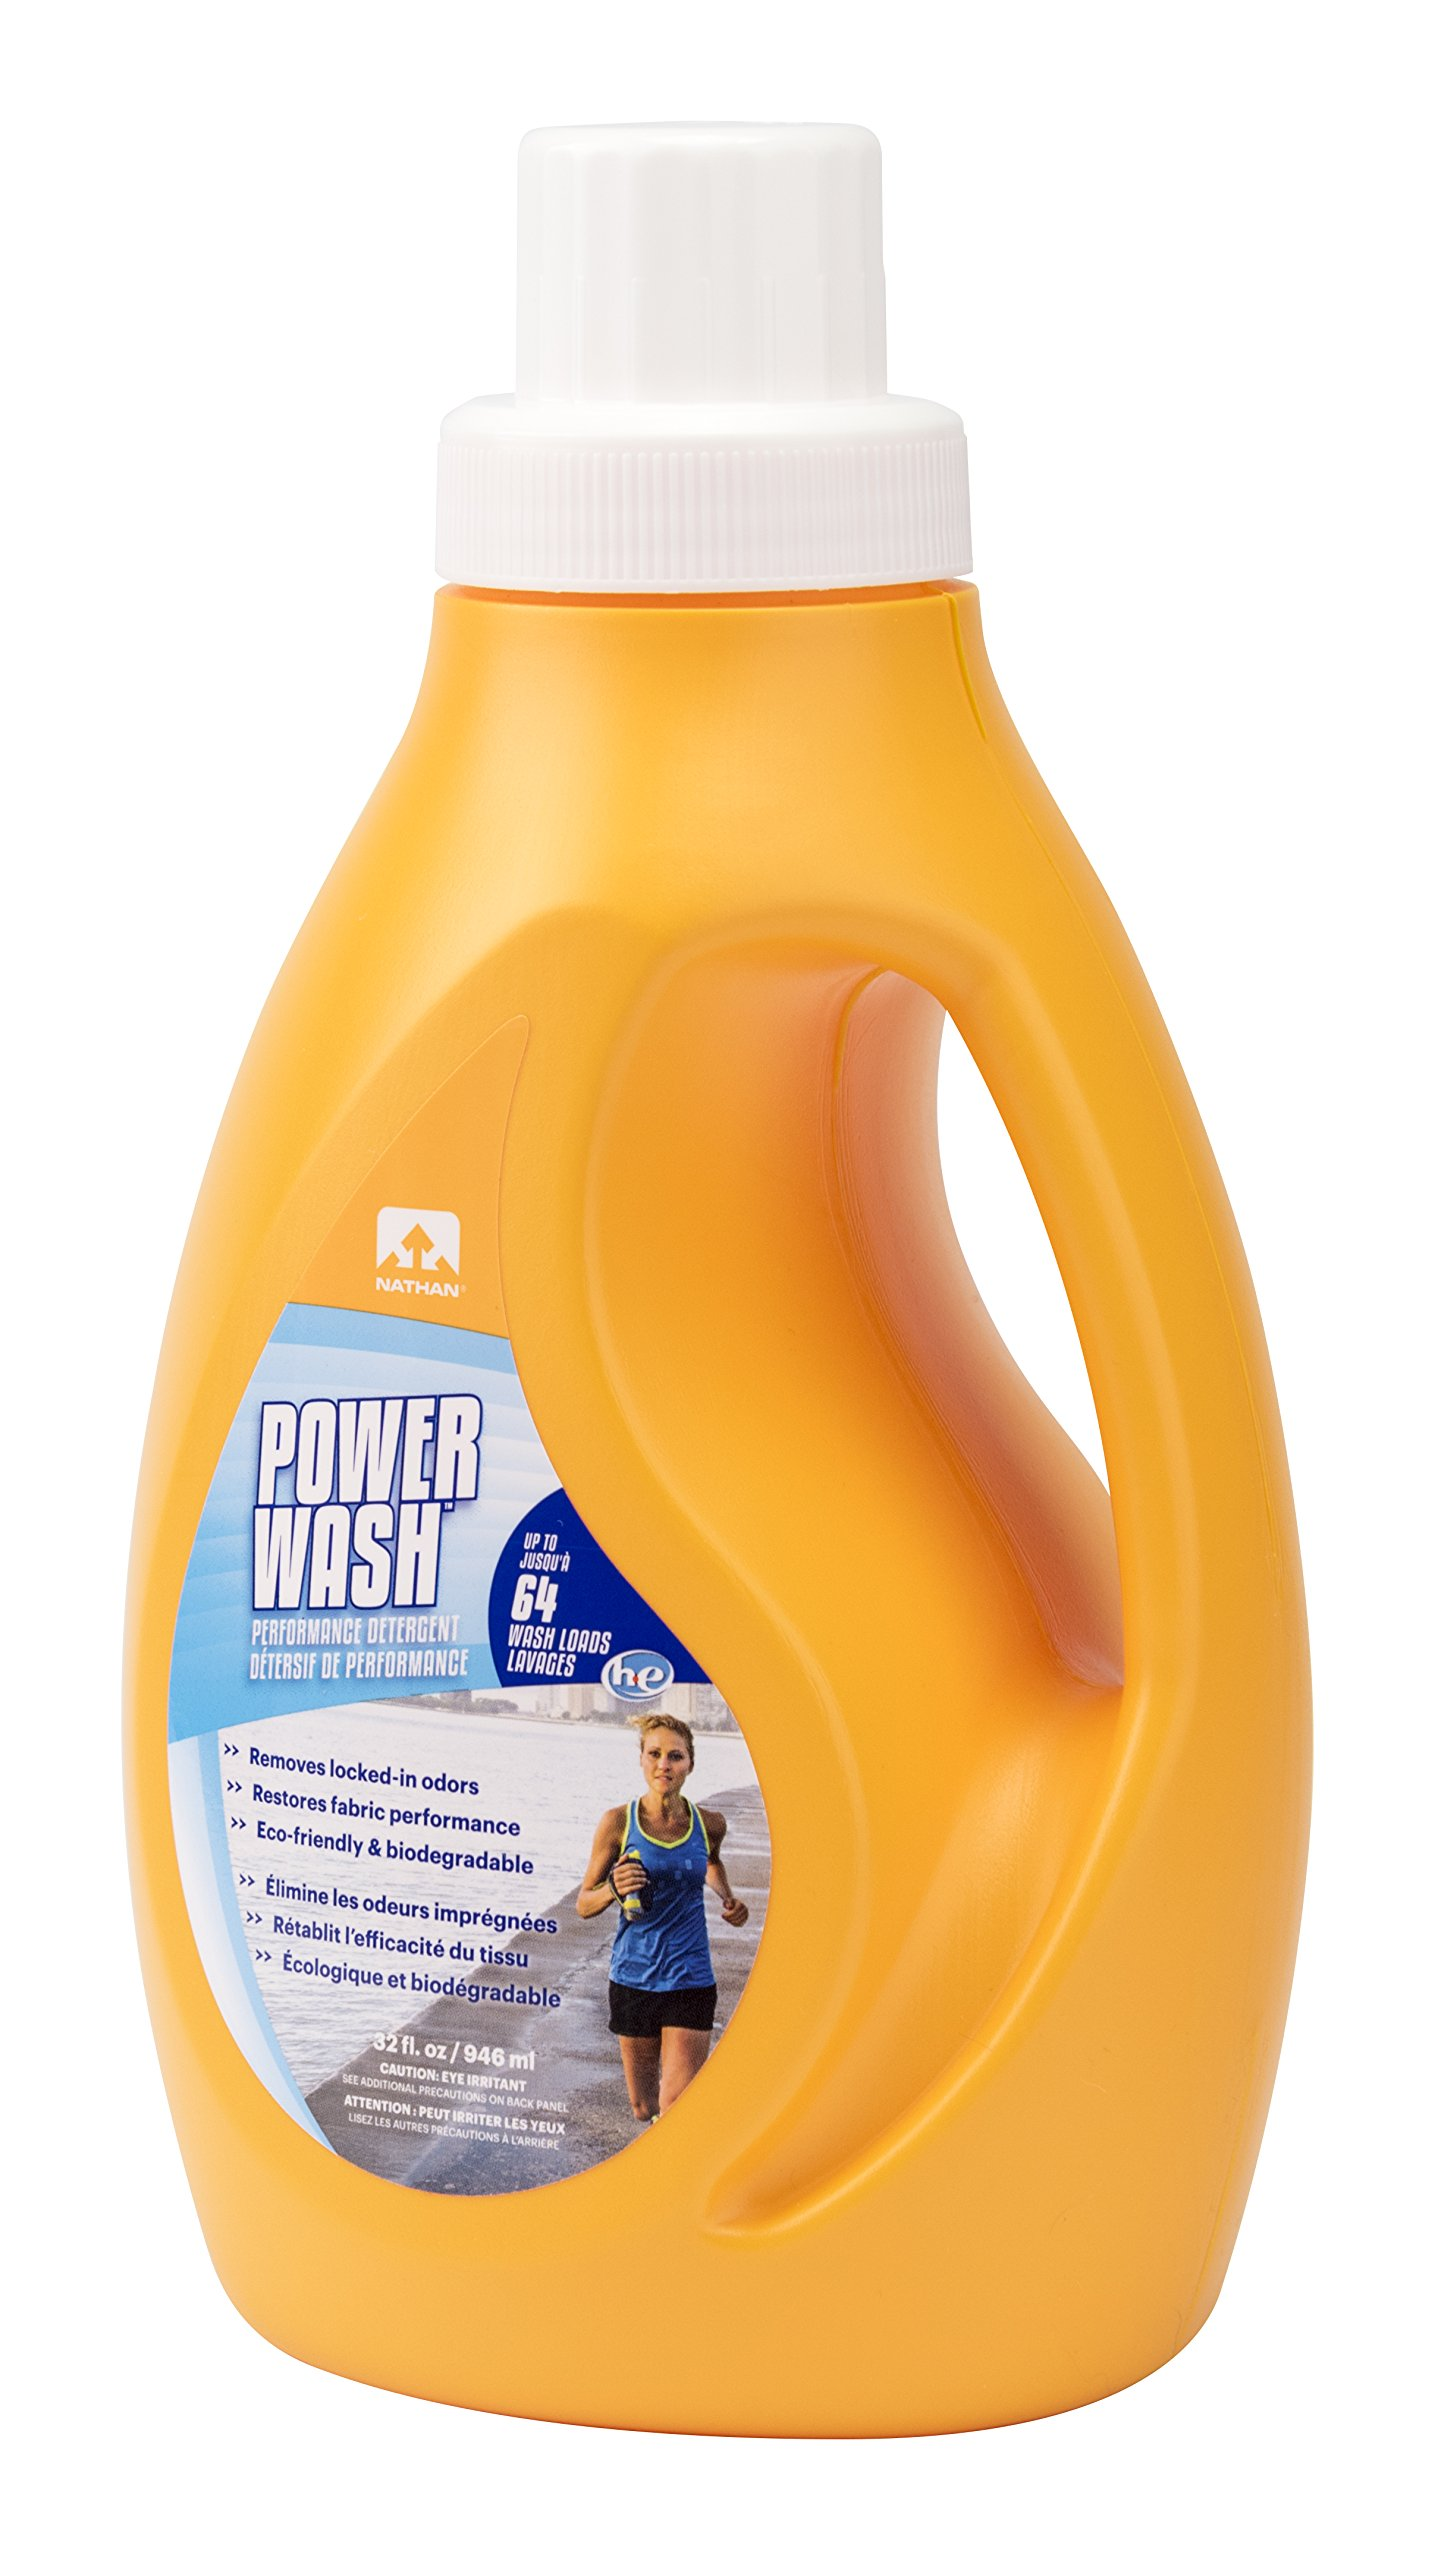 Nathan Sport Wash Laundry Detergent, Sport Detergent for Performance Athletic Wear, Natural & Eco-Friendly